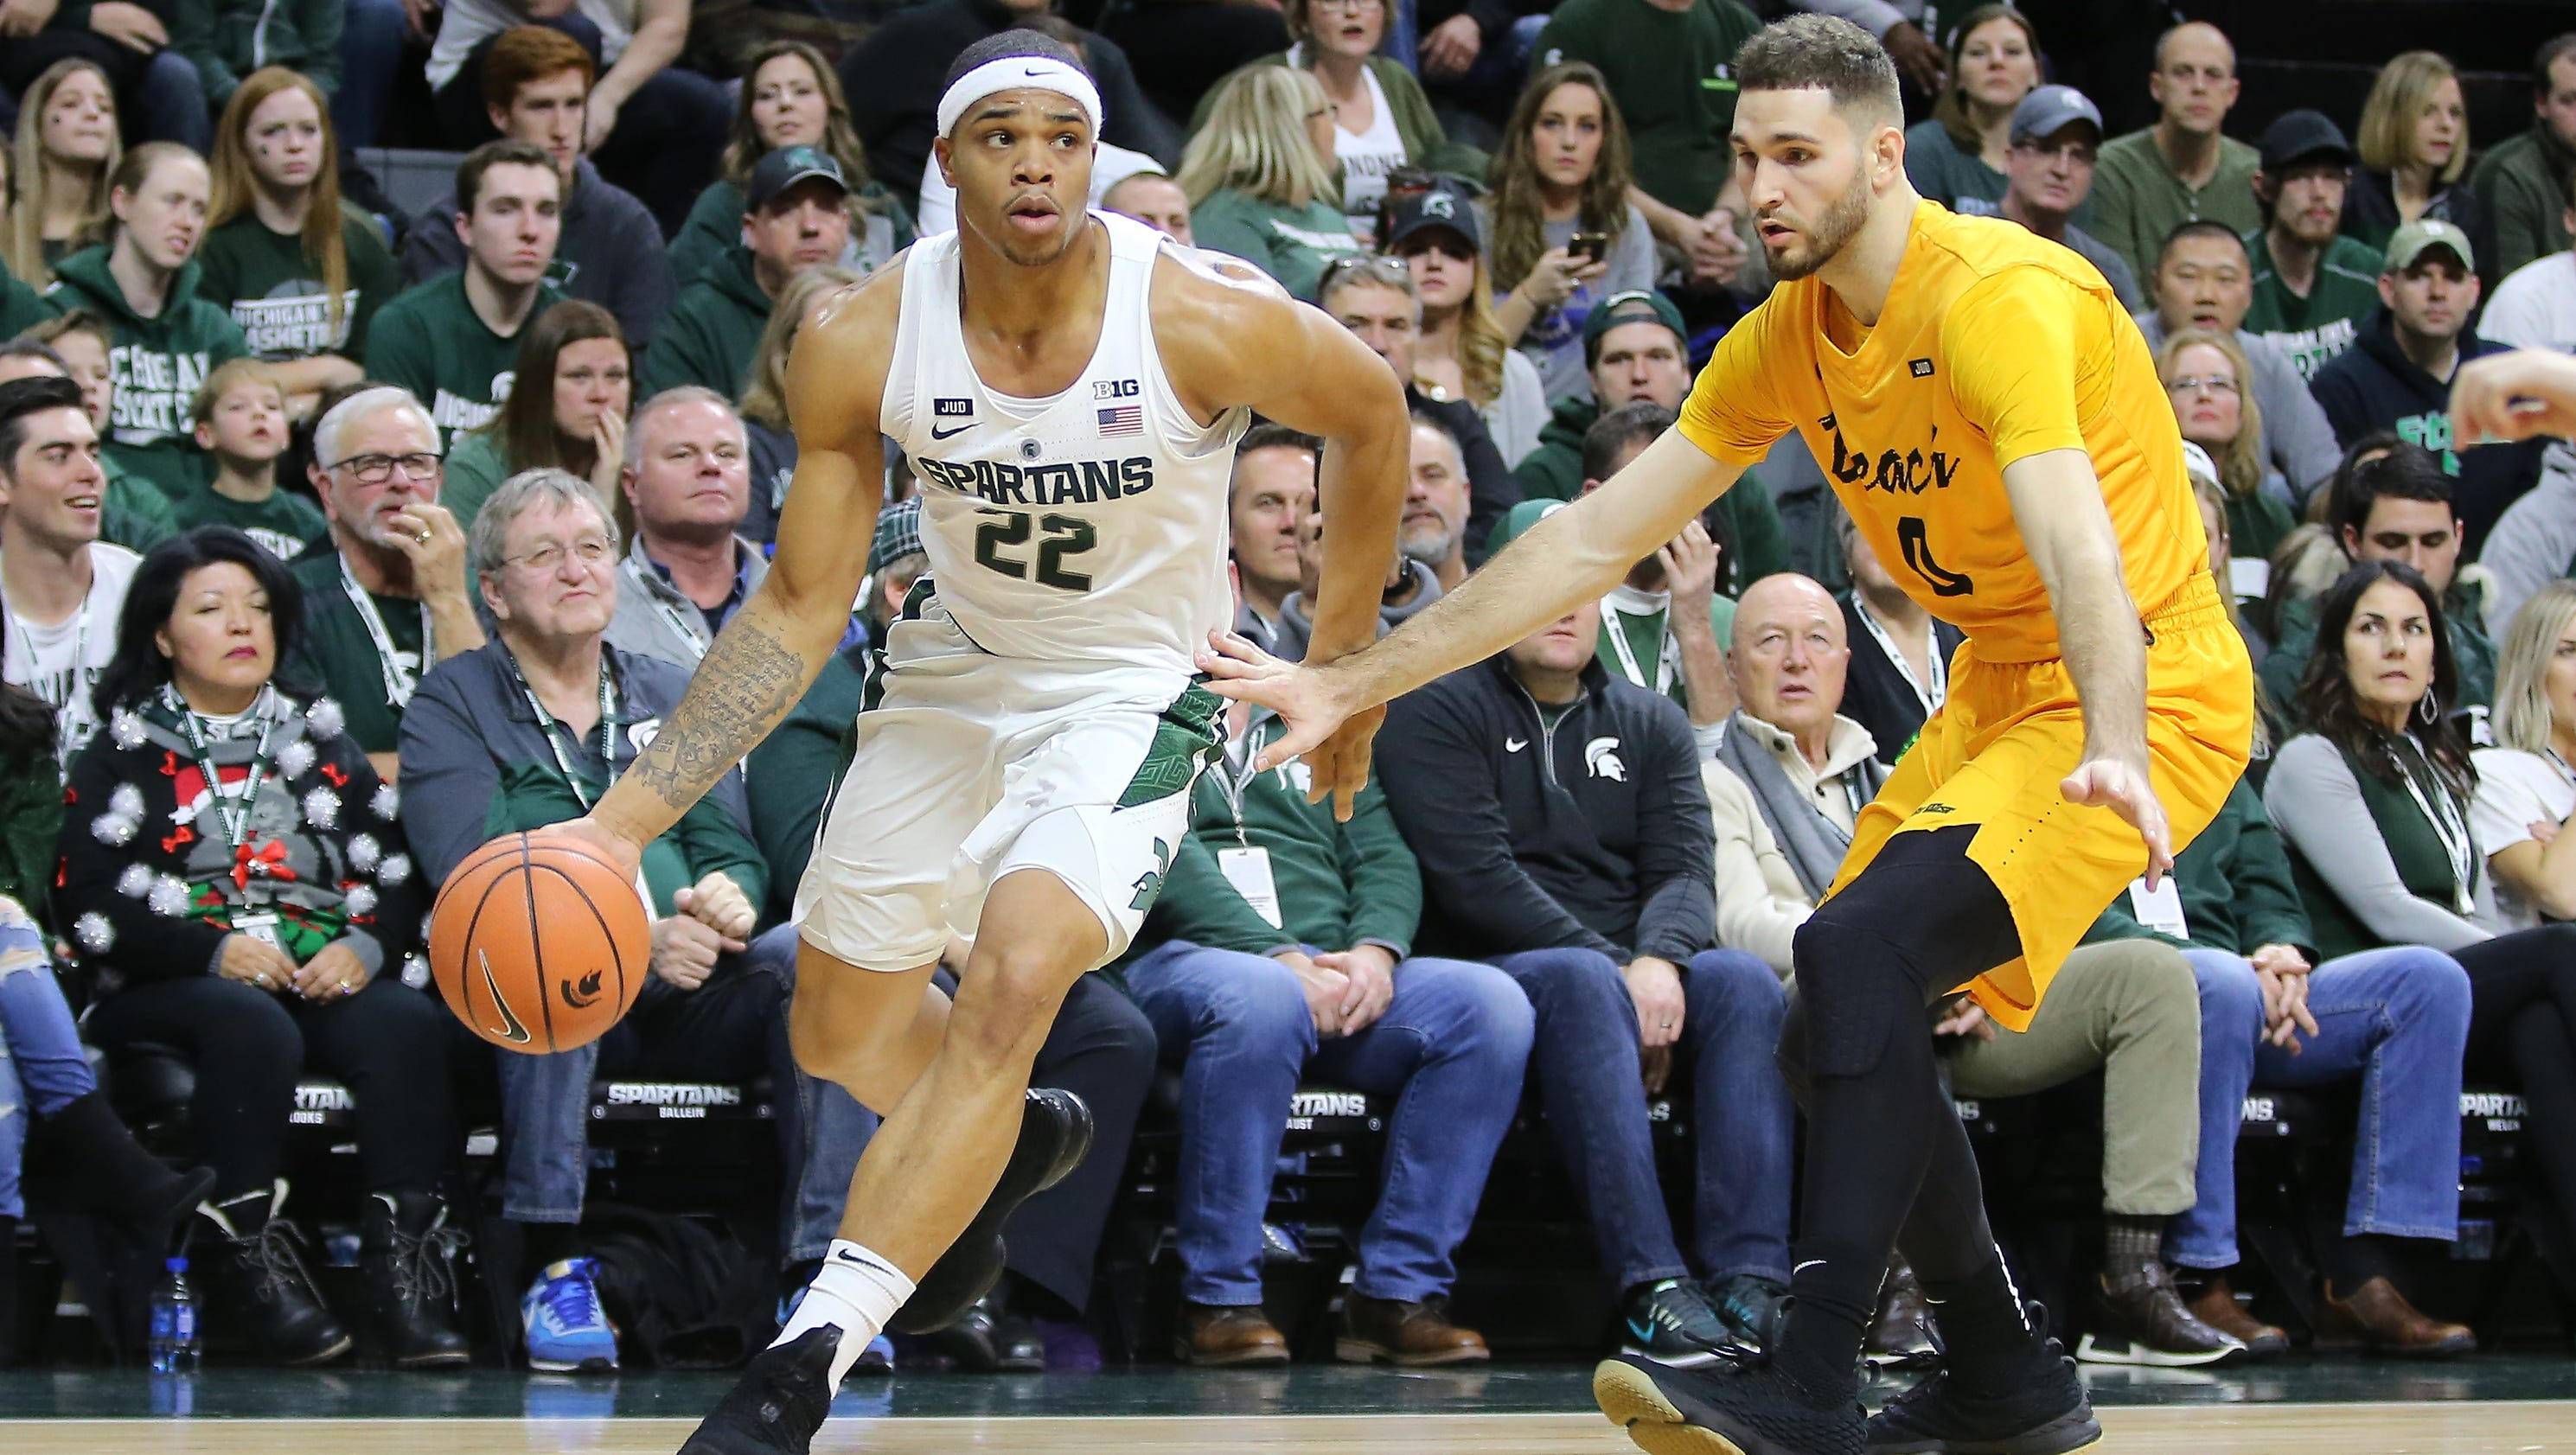 e7c7c38477c EAST LANSING — Miles Bridges has been working himself back to 100 percent  since his left ankle sprain on Nov. 19 against Stony Brook.